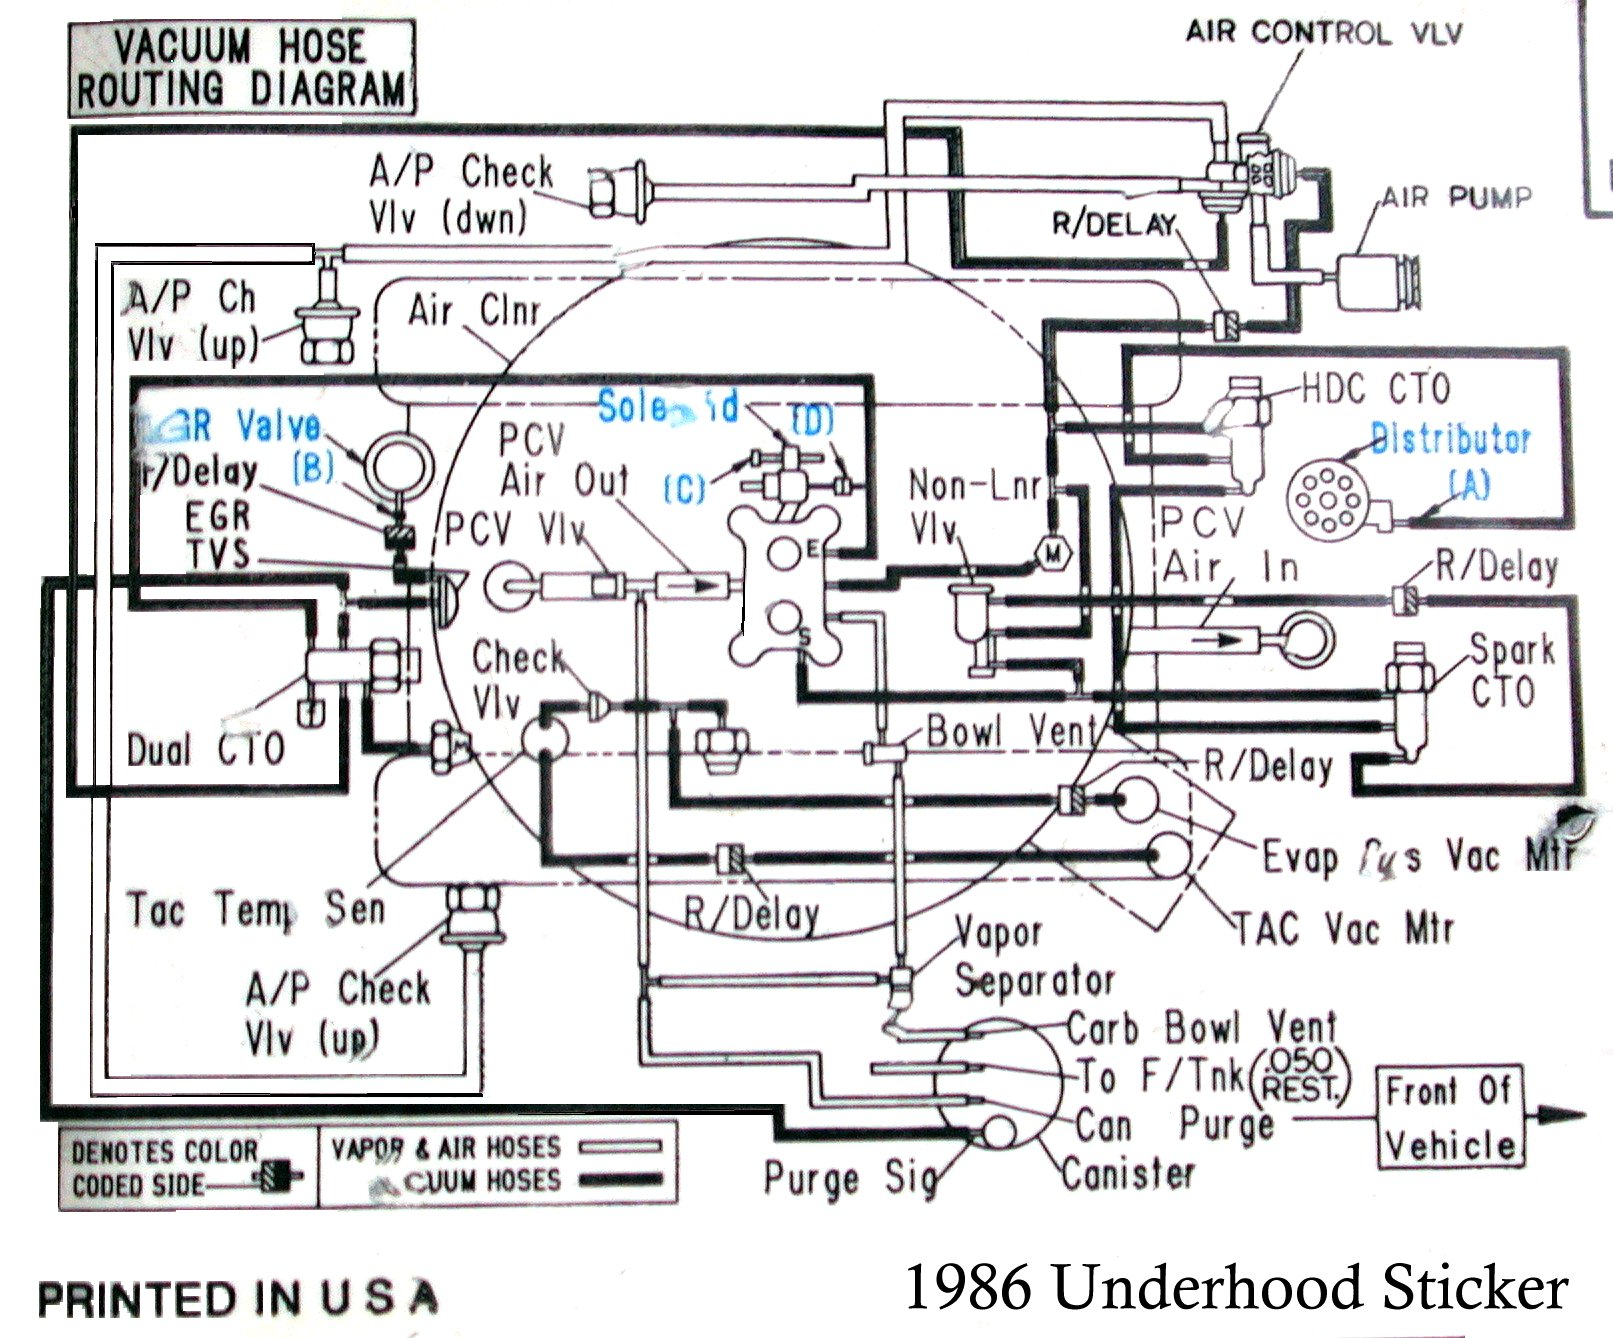 1978 jeep wagoneer wiring diagram free picture